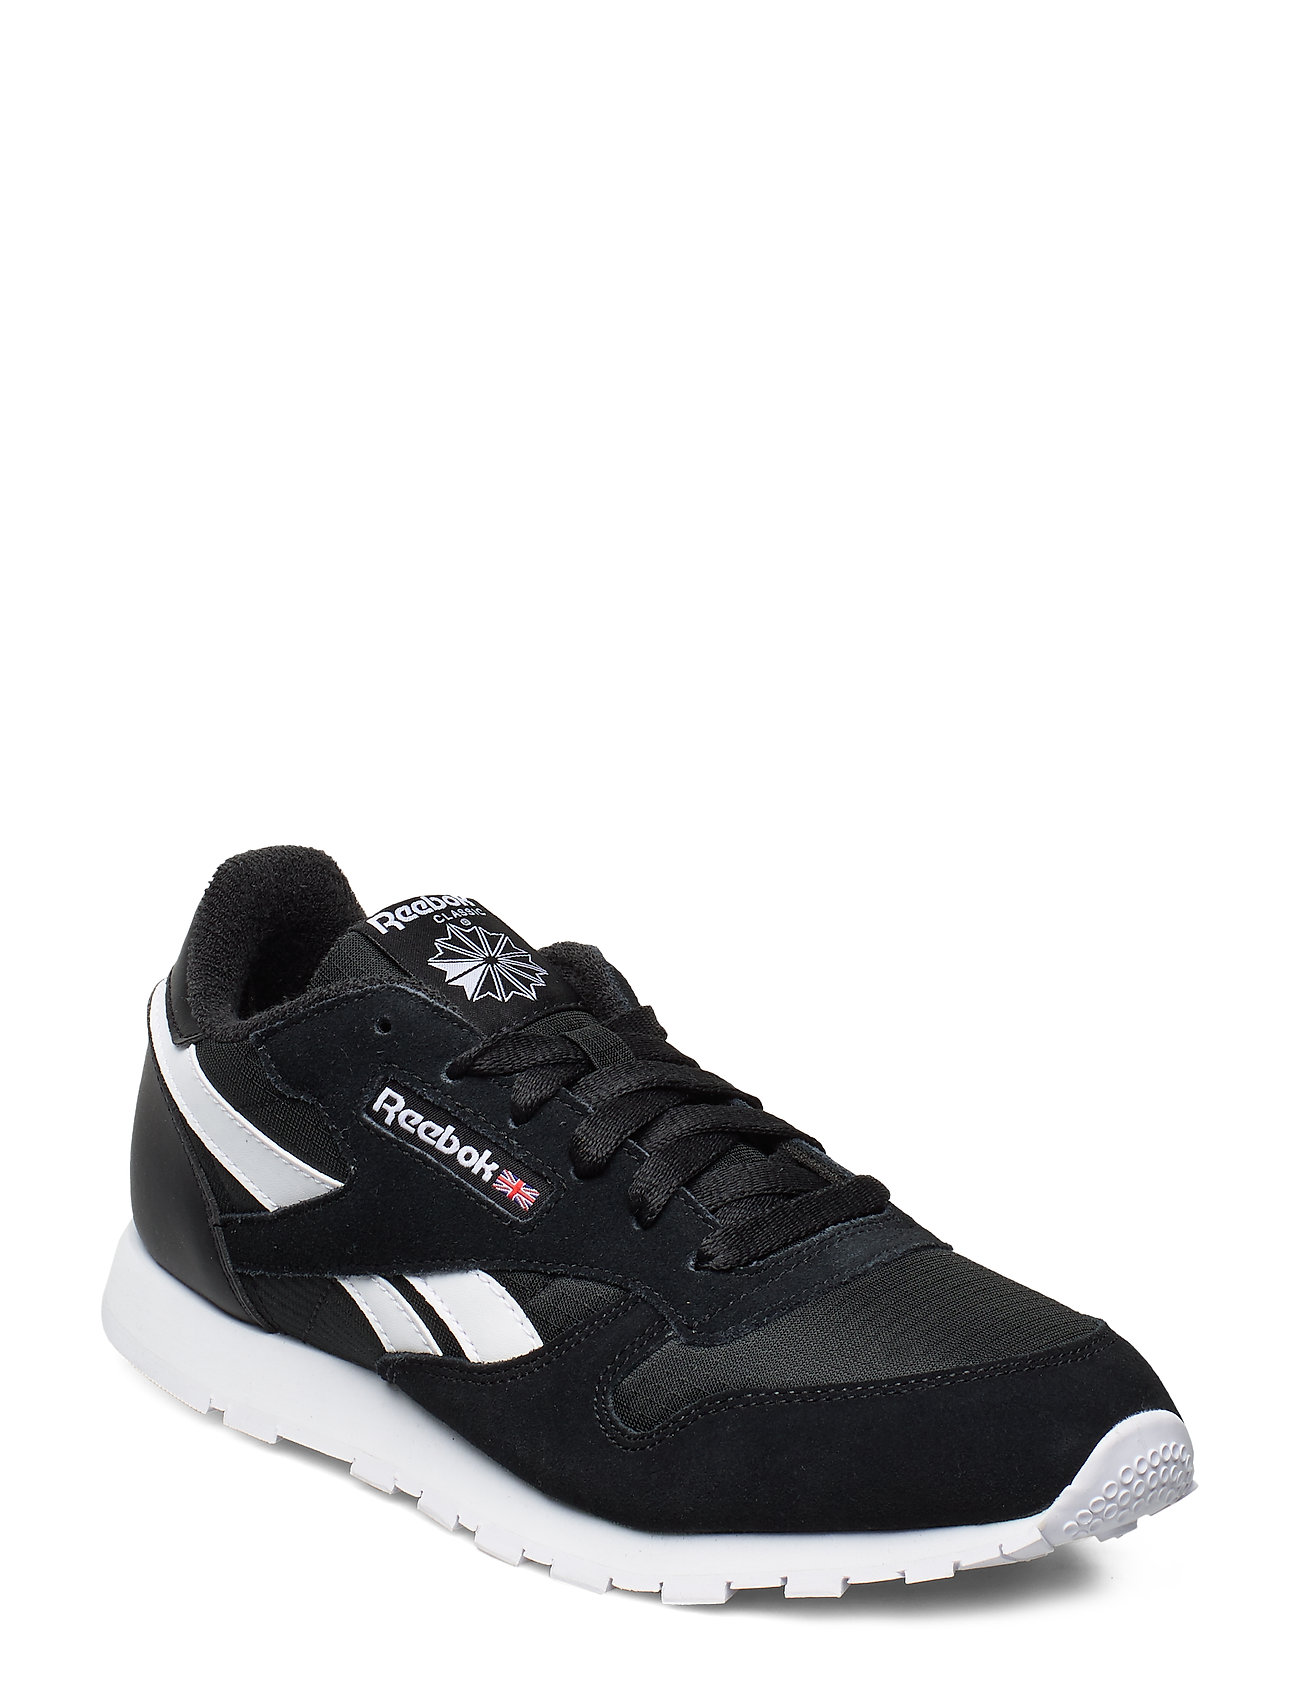 Image of Classic Leather Low-top Sneakers Sort Reebok Classics (3250585389)